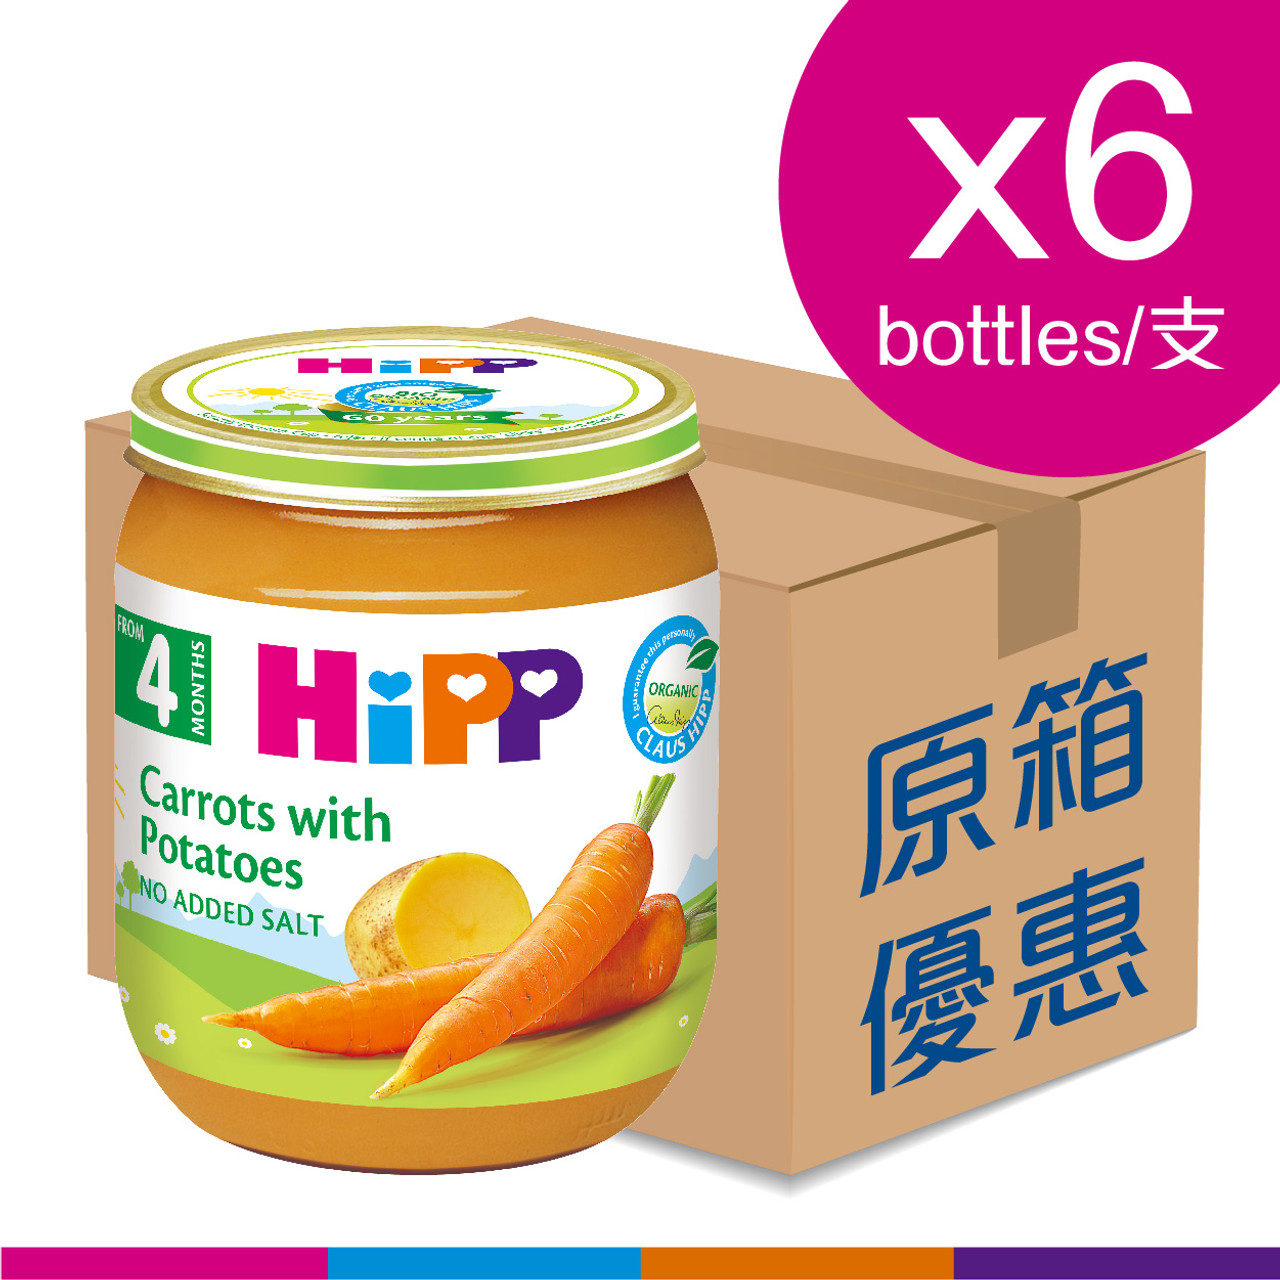 HiPP 喜寶有機胡蘿蔔馬鈴薯 (125克) 6樽裝(圖片只供參考) | HiPP Organic Baby Carrots with Potatoes (125g) 6 pcs package (Photo for reference only)